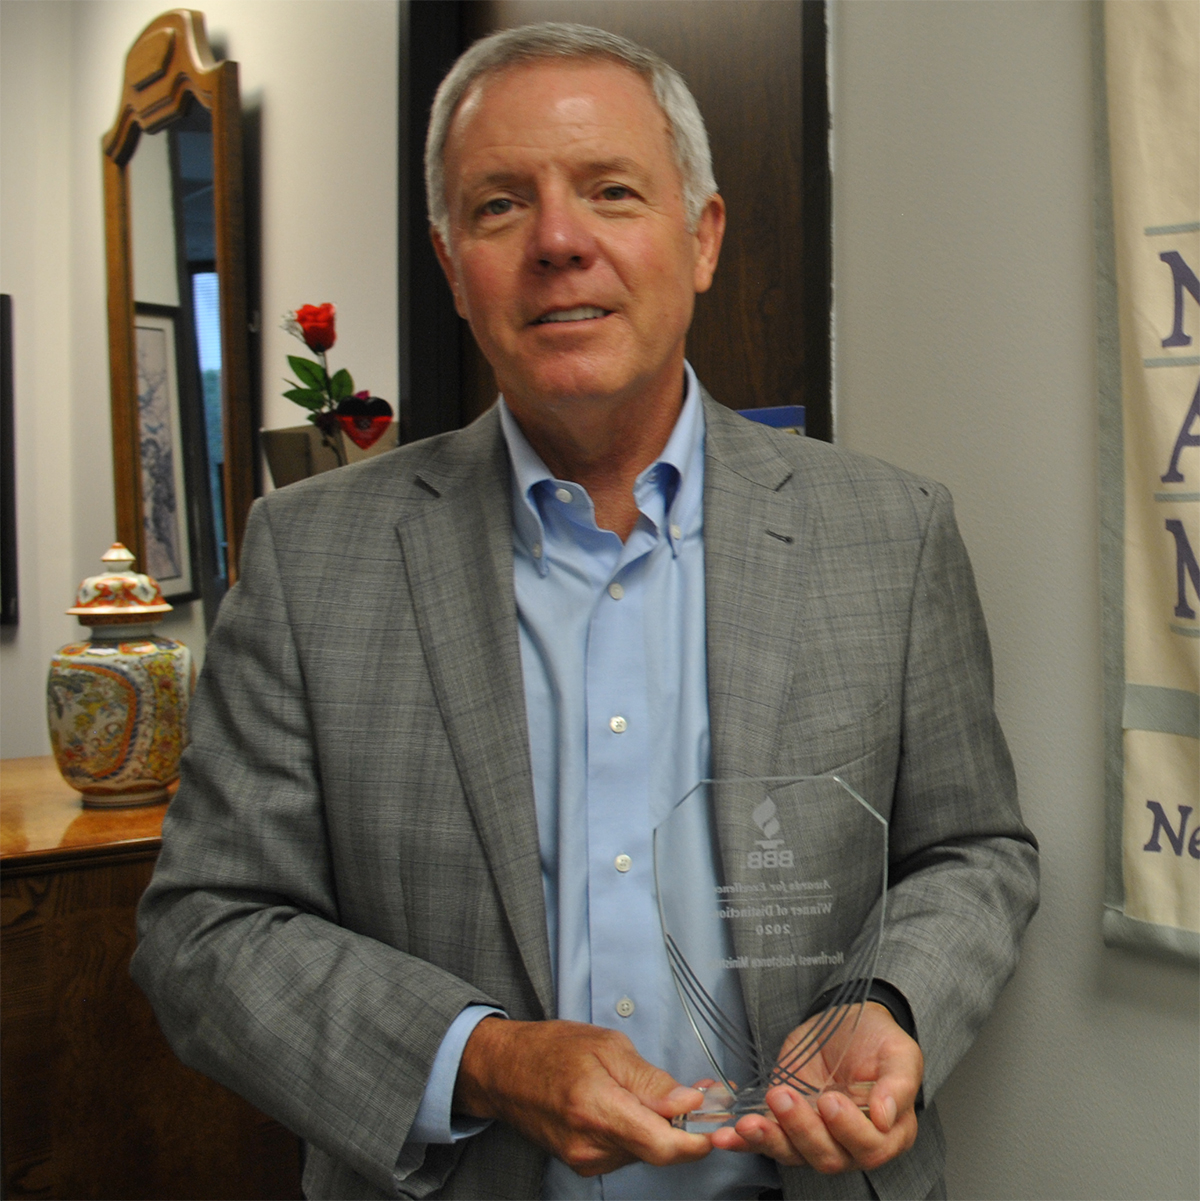 Better Business Bureau Recognizes Northwest Assistance Ministries with 2020 Winner of Distinction Award